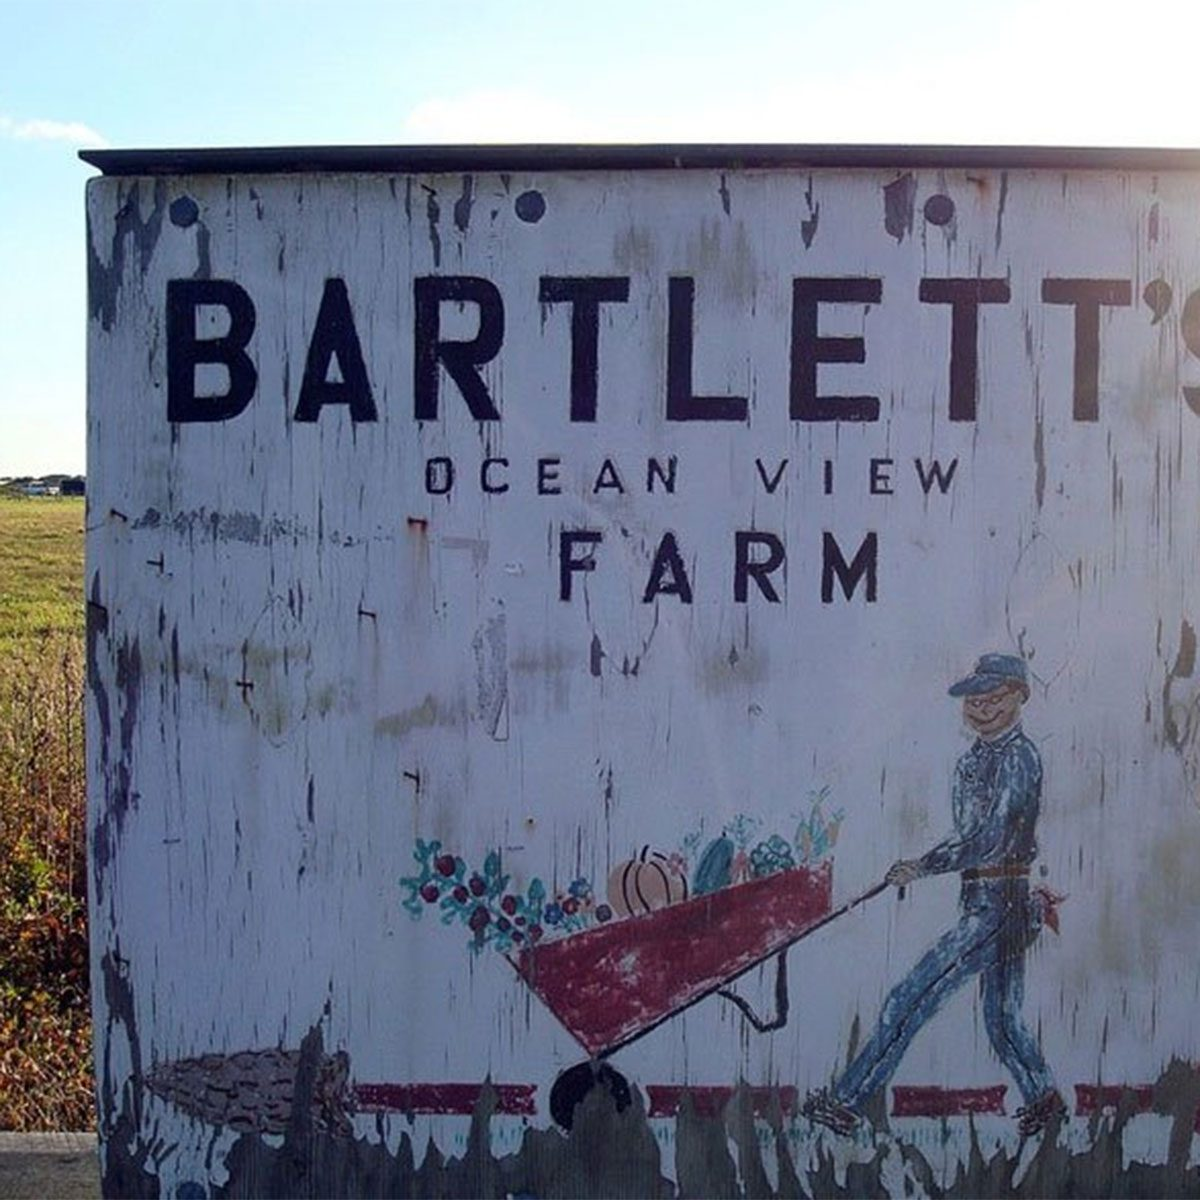 Bartlett's Farm